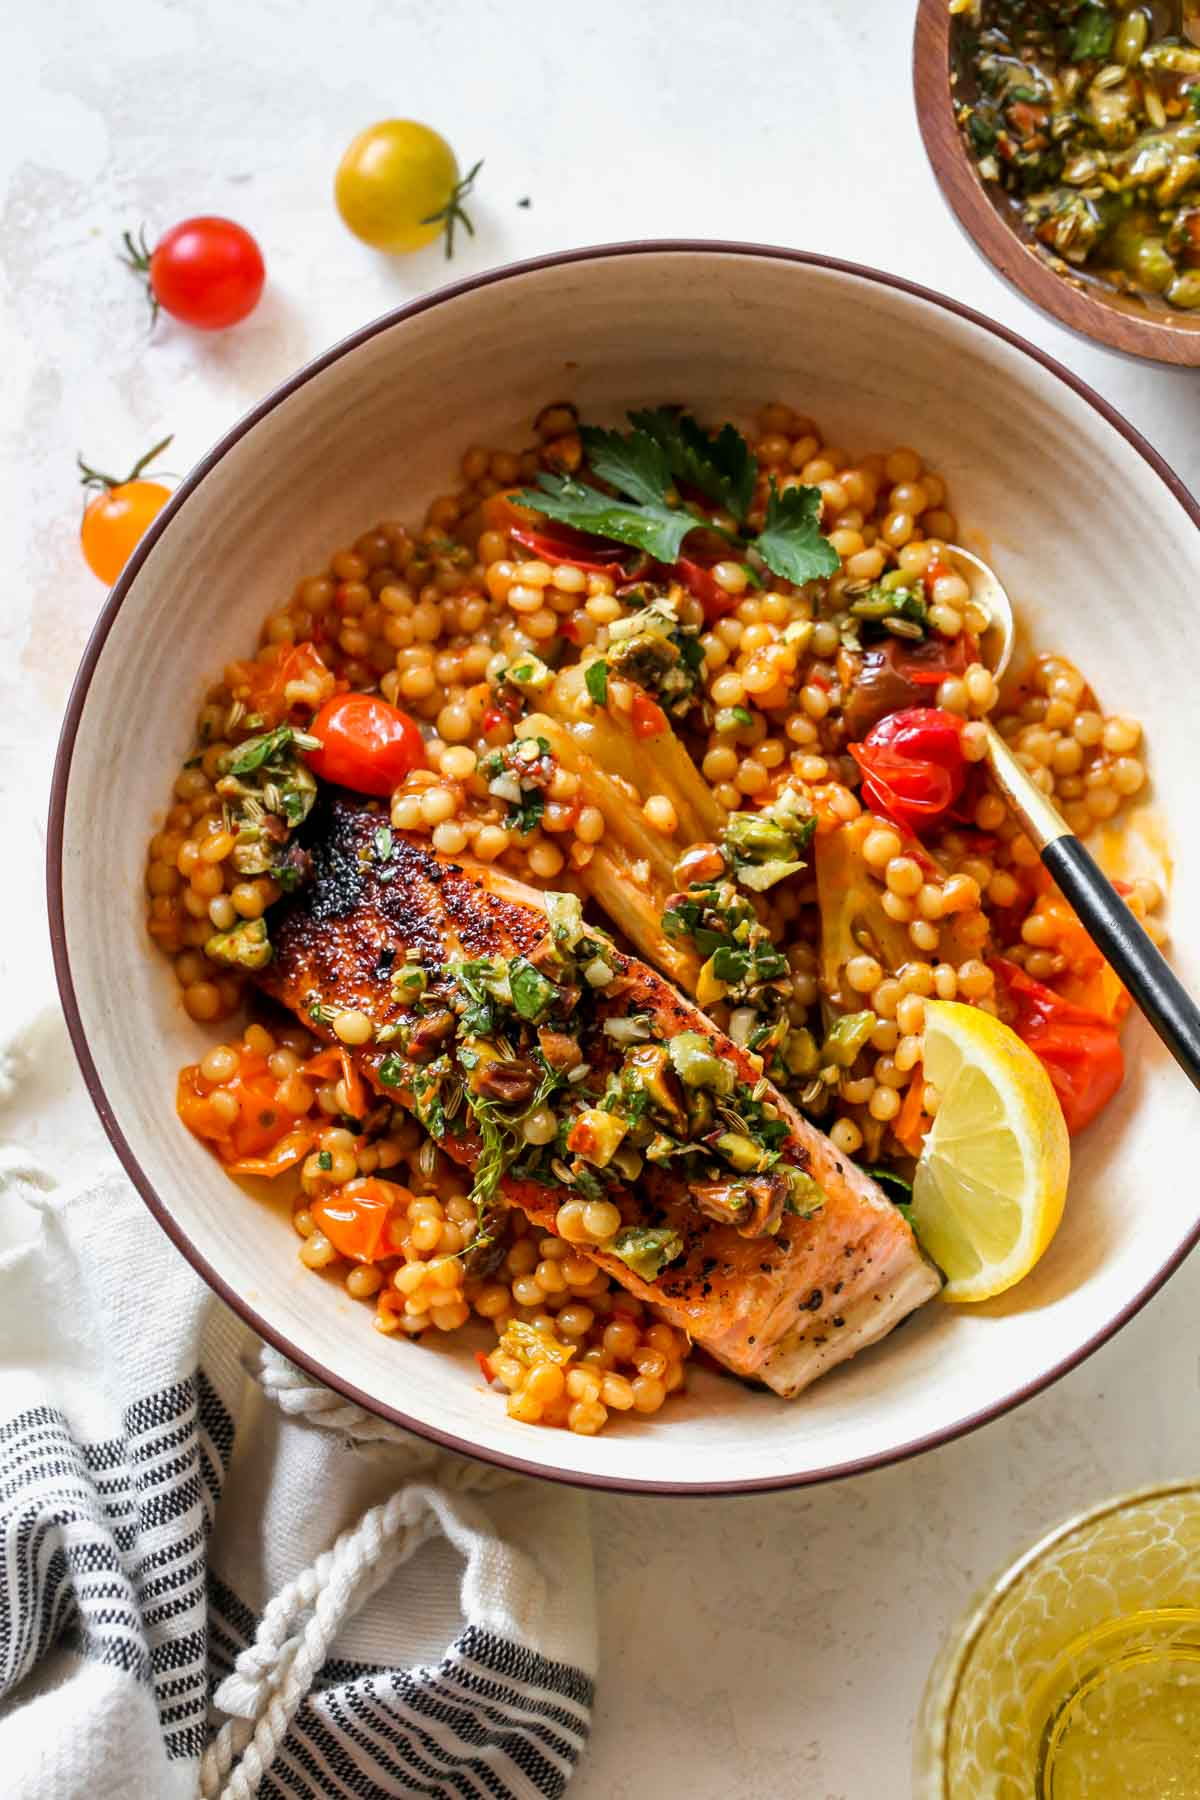 A tan bowl filled with couscous, salmon, olive salsa, and lemon